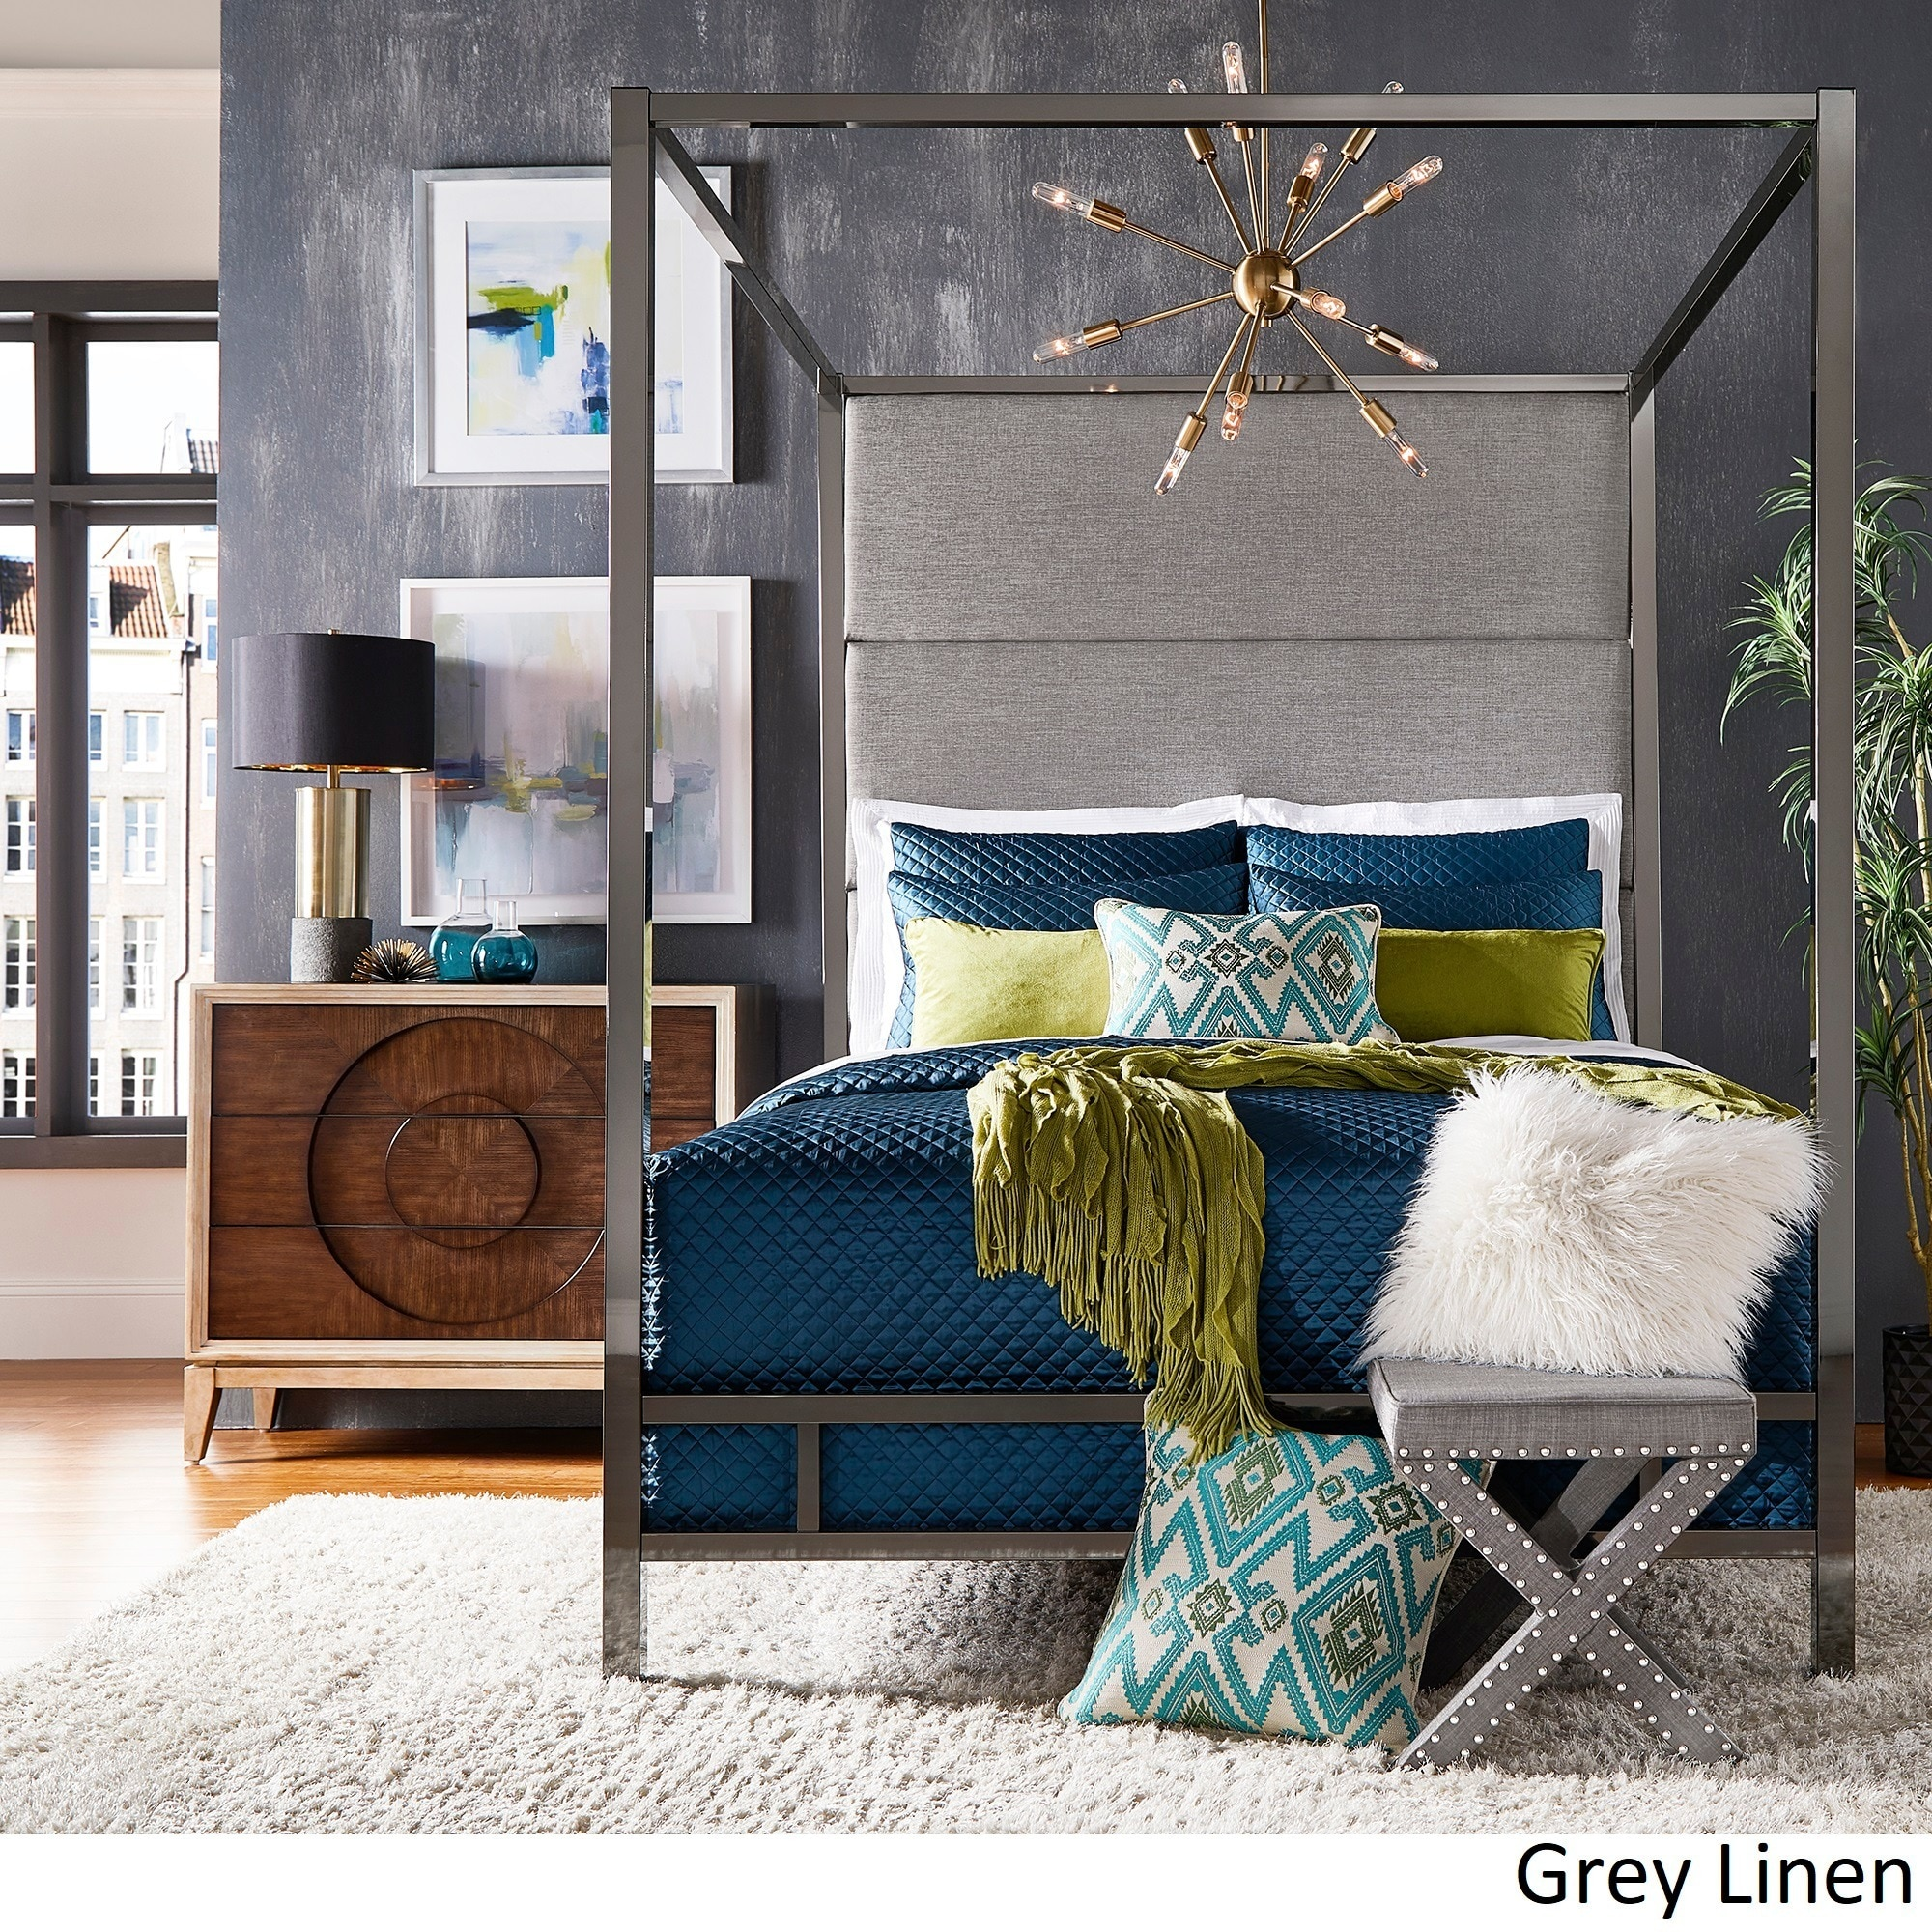 Details about Evie Black Nickel Metal Canopy Bed with Linen Panel Headboard by iNSPIRE Q Bold & Evie Black Nickel Metal Canopy Bed with Linen Panel Headboard by ...